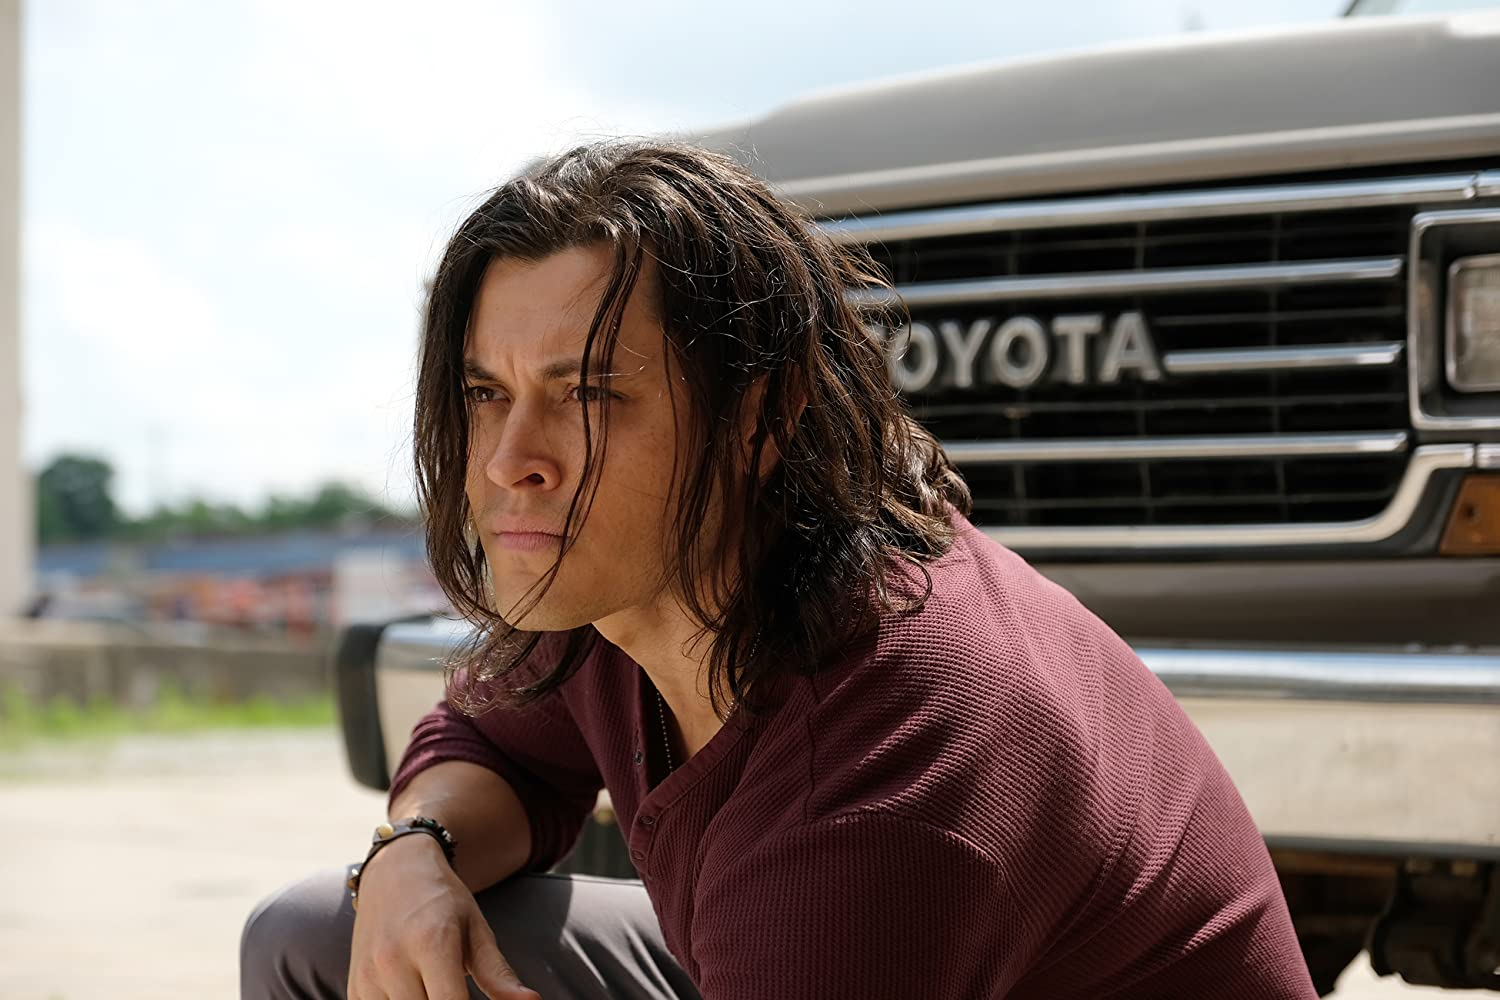 Blair Redford in The Gifted (2017)